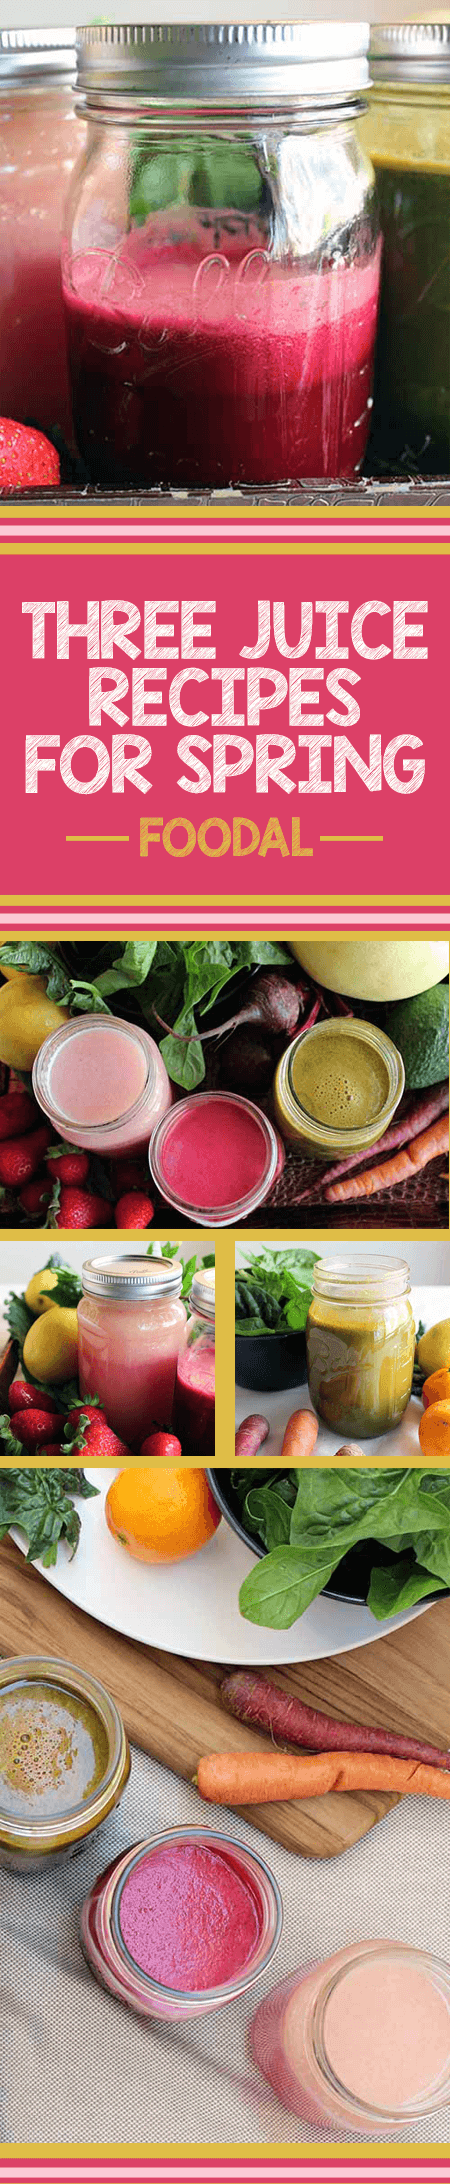 Are you looking for a way to include more spring produce in your diet? If so, try juicing your fruits and veggies! It's a delicious, easy, and healthy way to get the many vitamins, minerals, nutrients, and nutrition you so crave from them. In this article, we'll share 3 easy juicing recipes that showcase the best fruits and vegetables of the season. https://foodal.com/drinks-2/juice/three-recipes-for-spring/